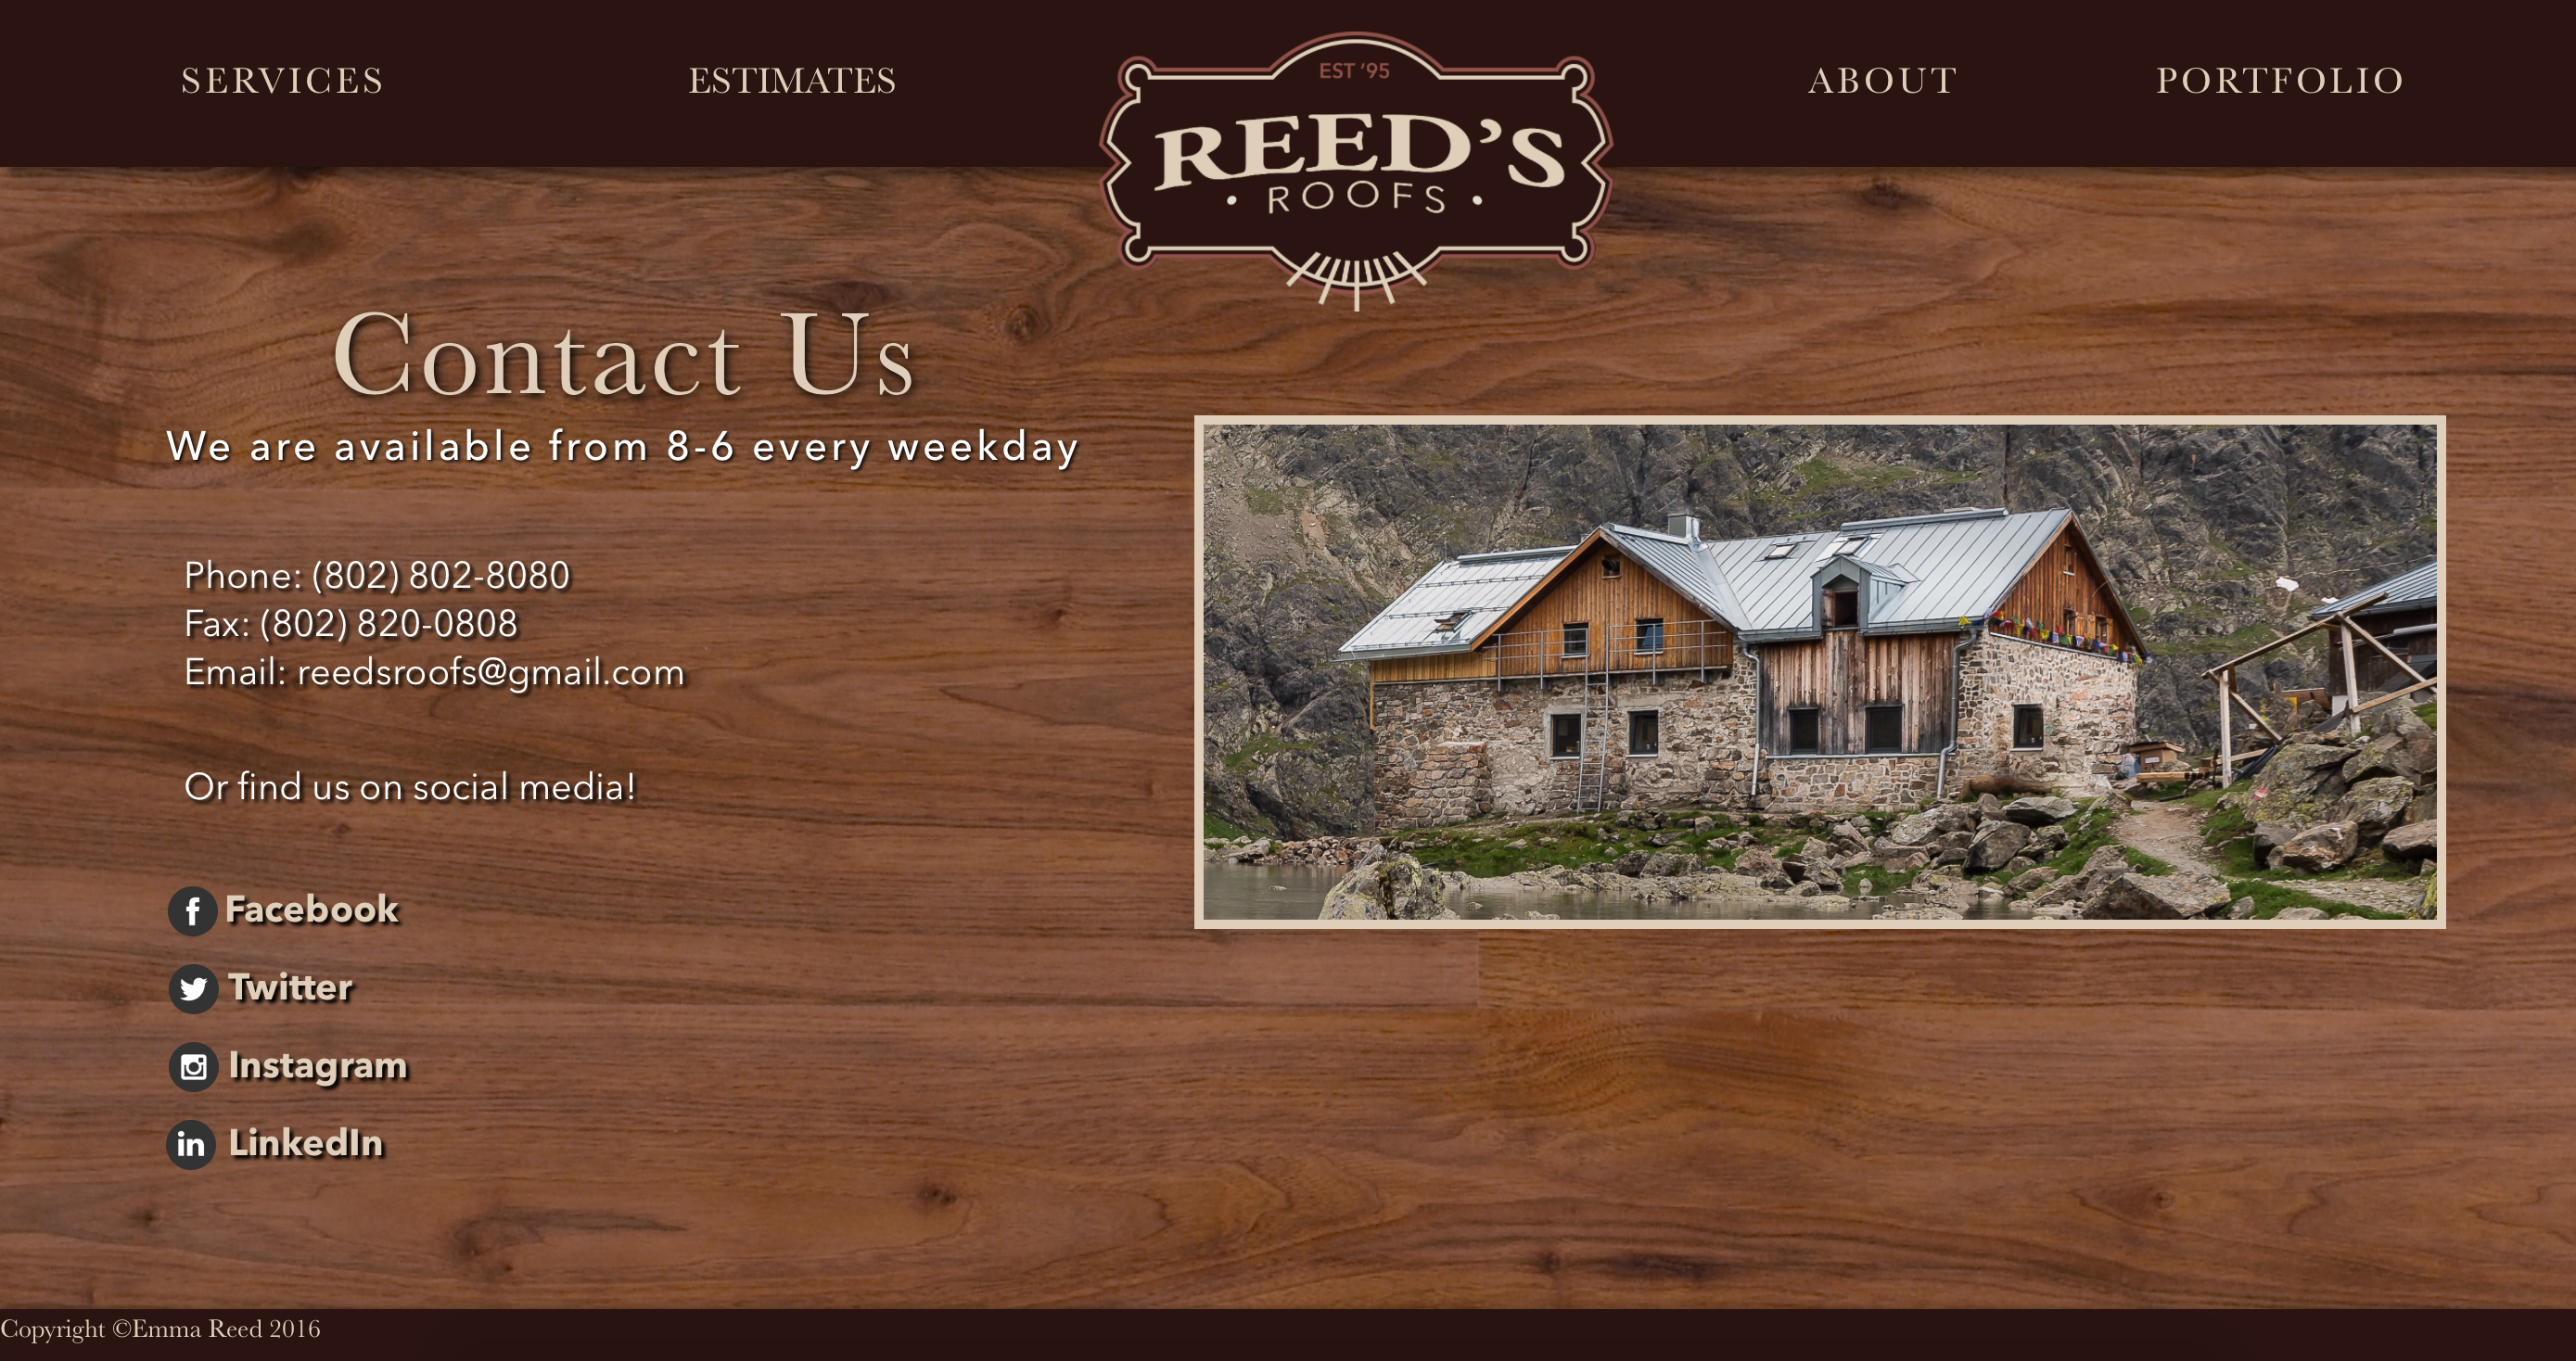 Reed's Roofs Contact